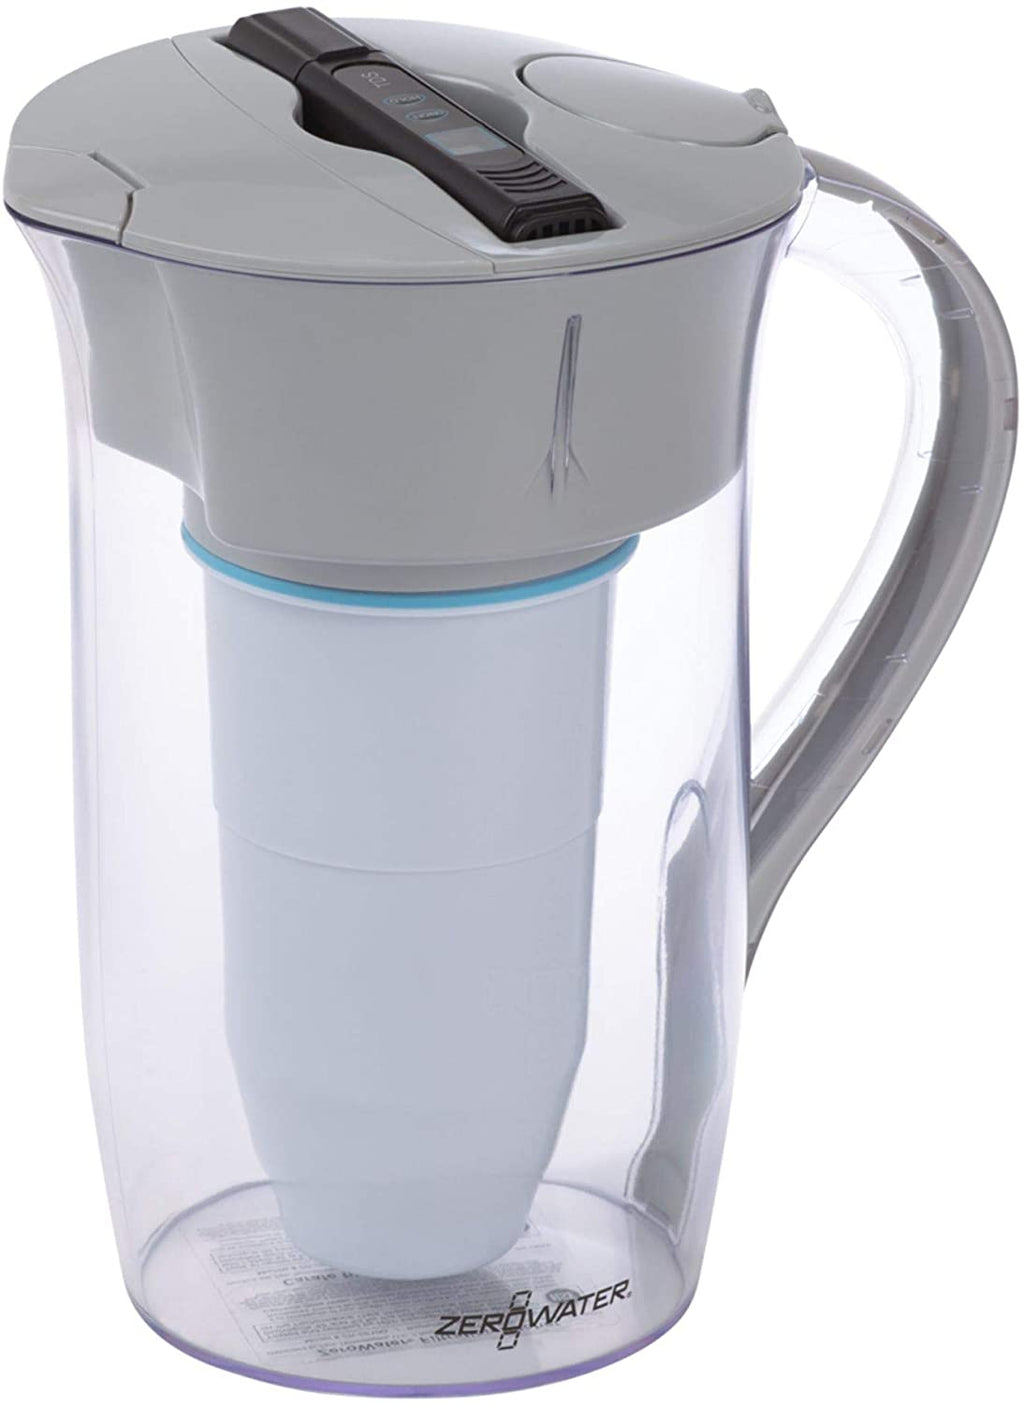 ZeroWater | 8 Cup Water Filter Jug .Water Quality Meter, 1.9 litres